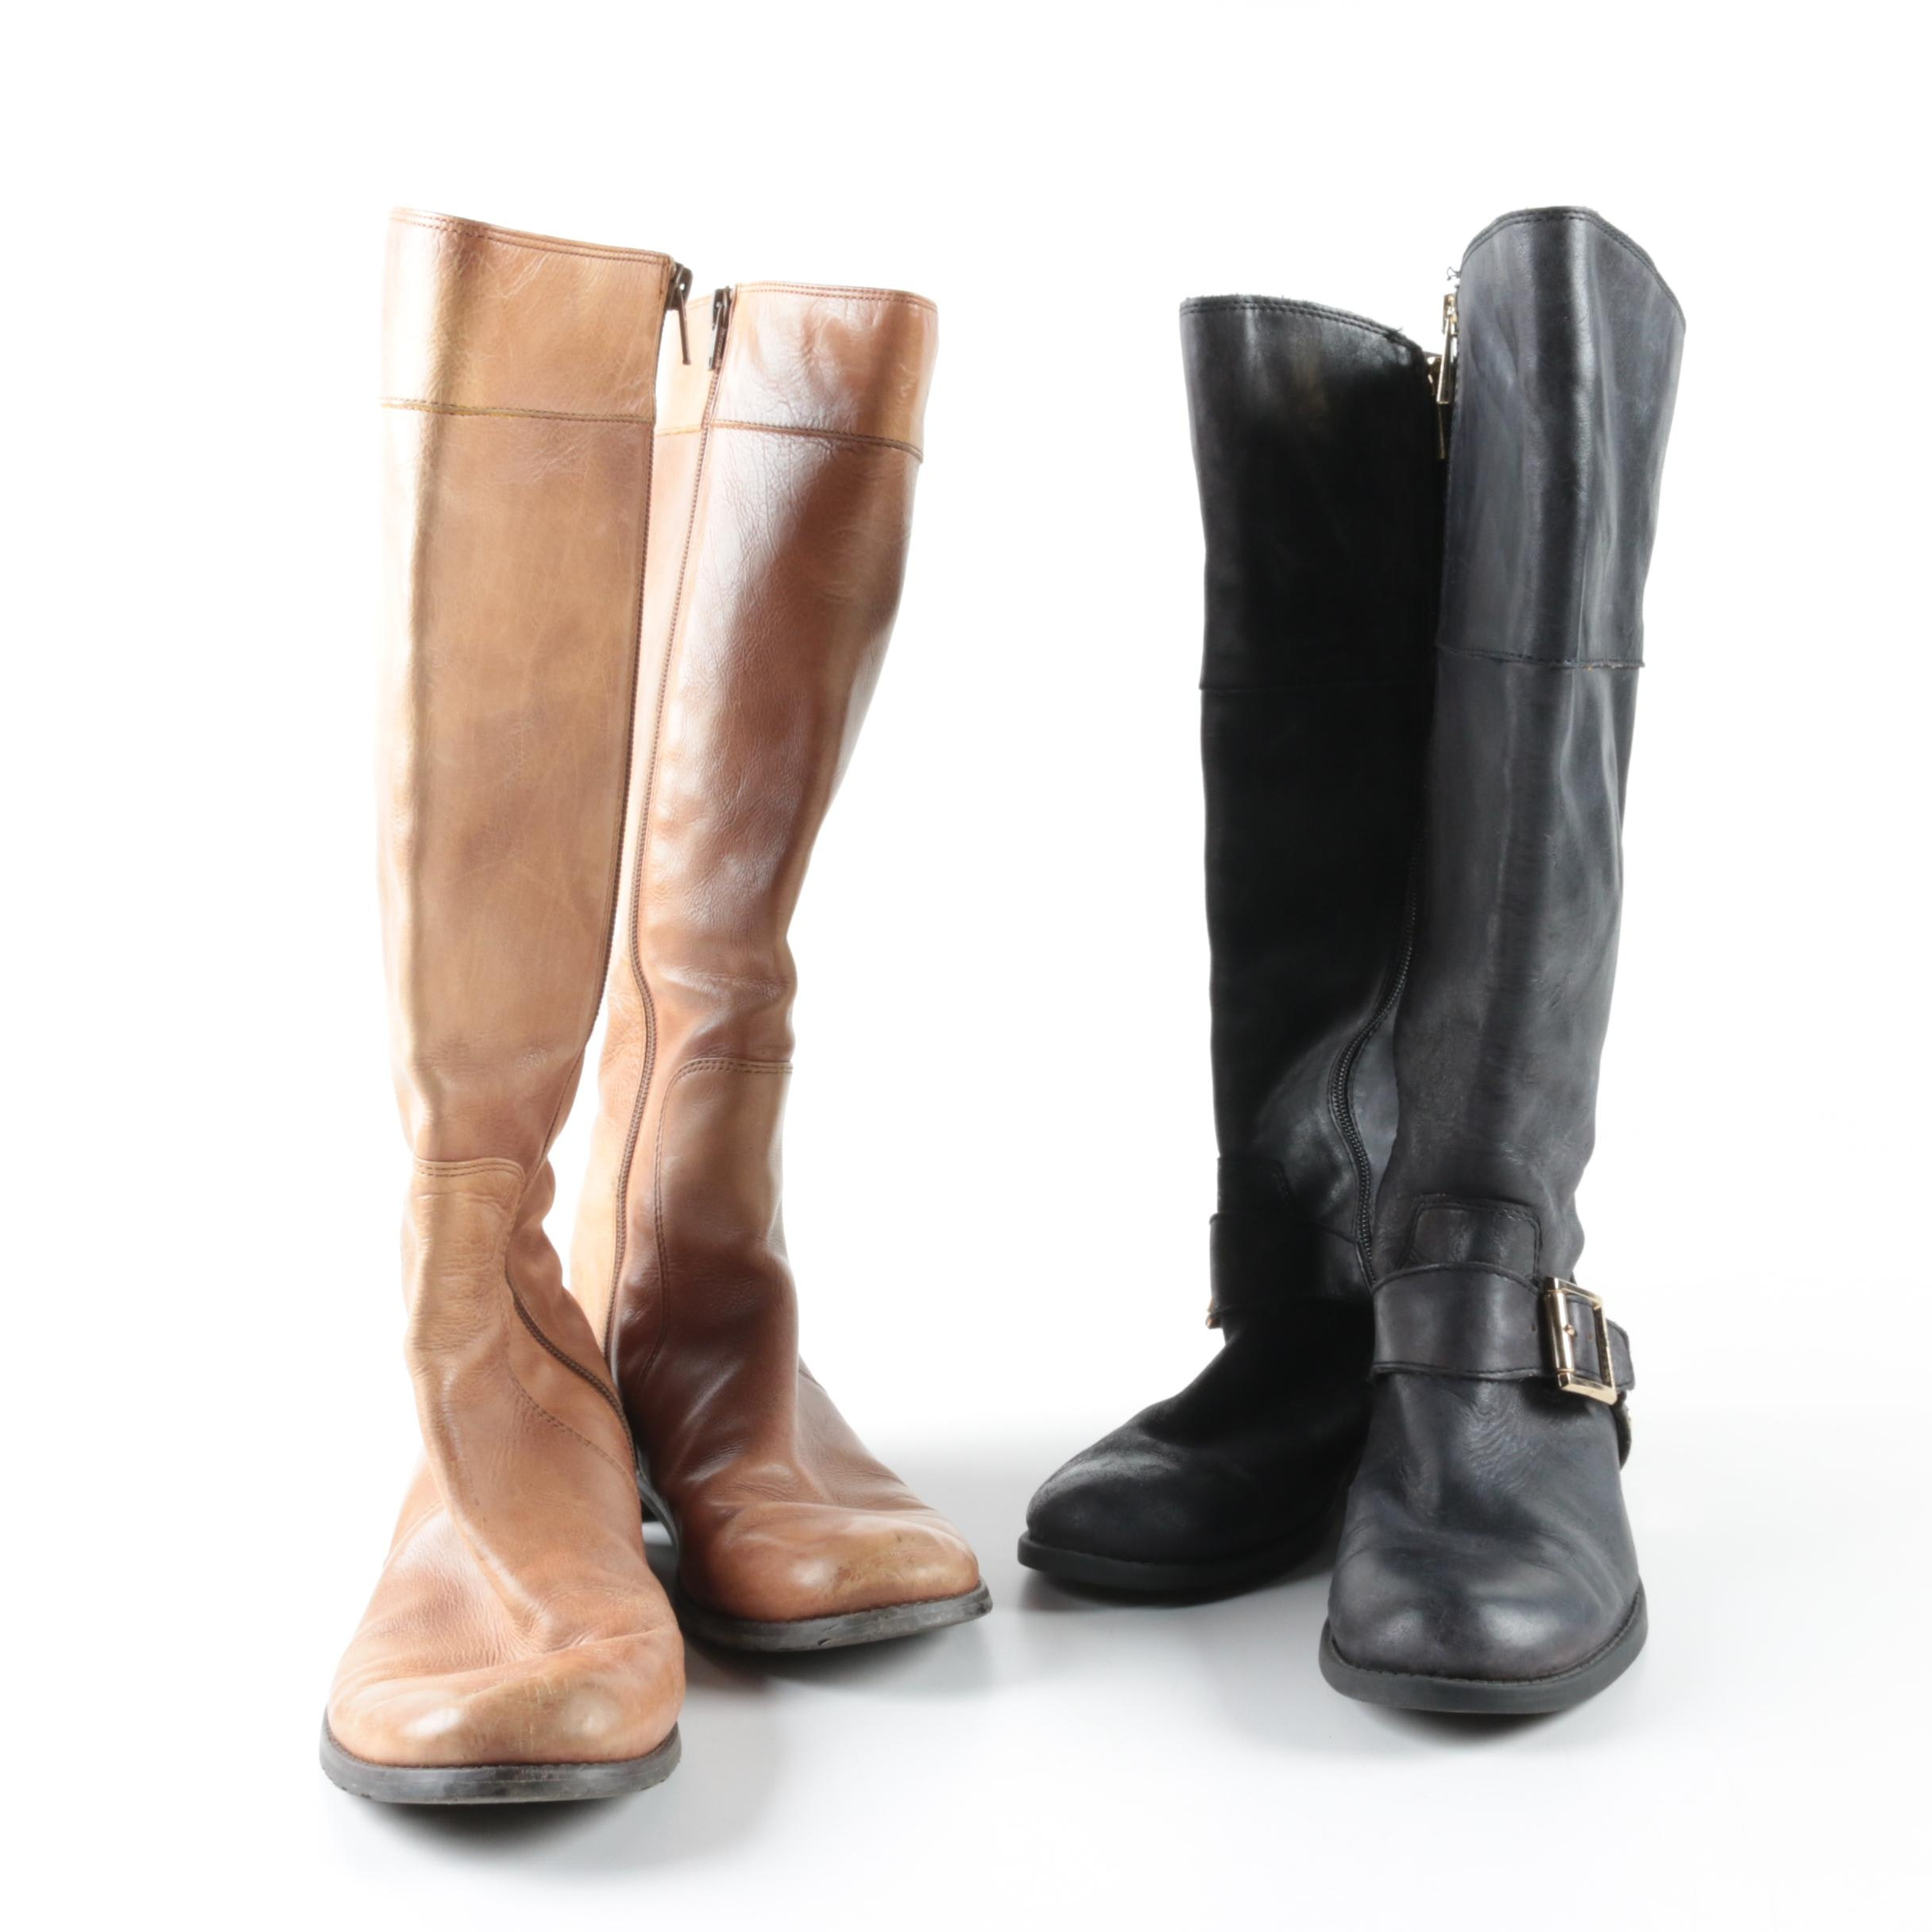 Stuart Weitzman and Vince Camuto Leather Boots